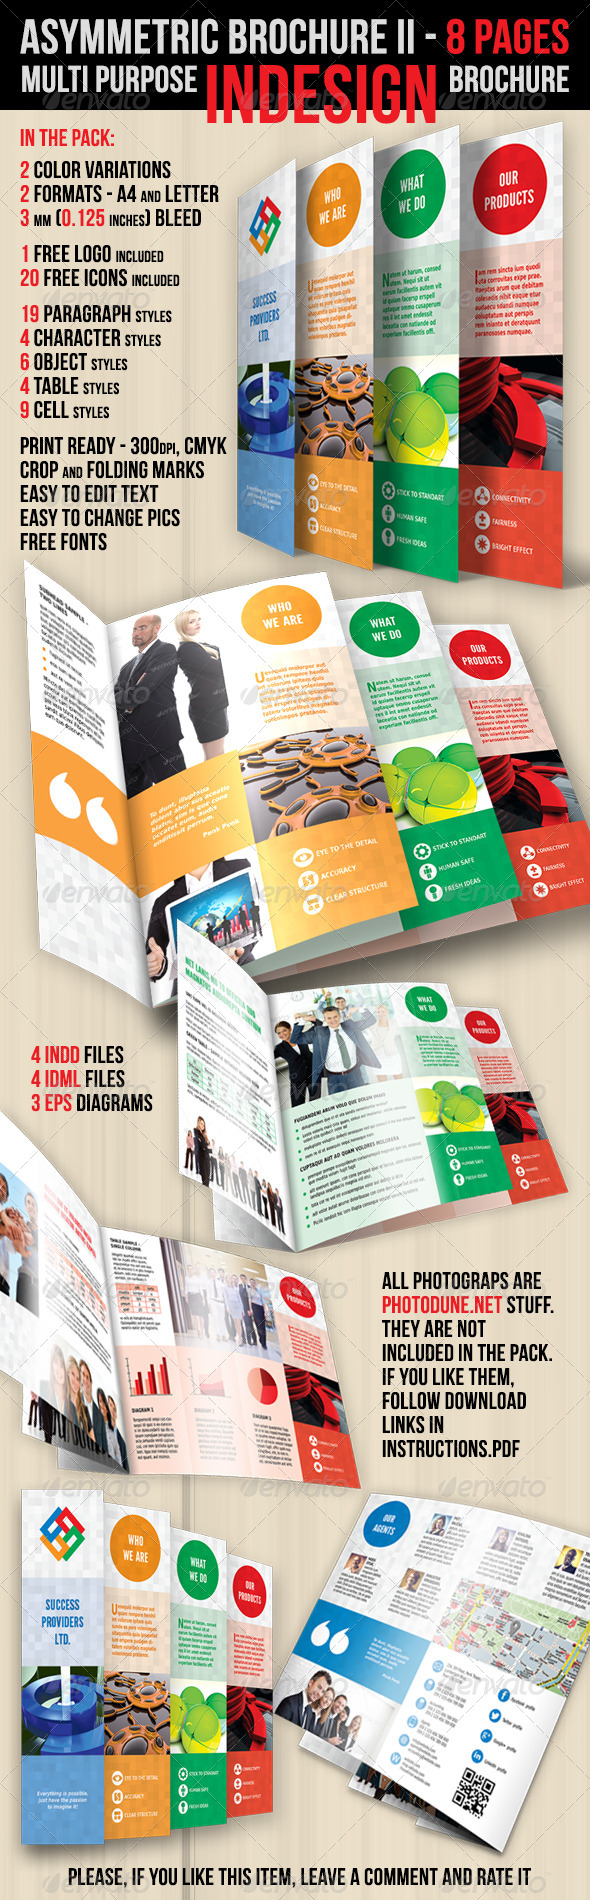 GraphicRiver Asymmetric Brochure II 4508654